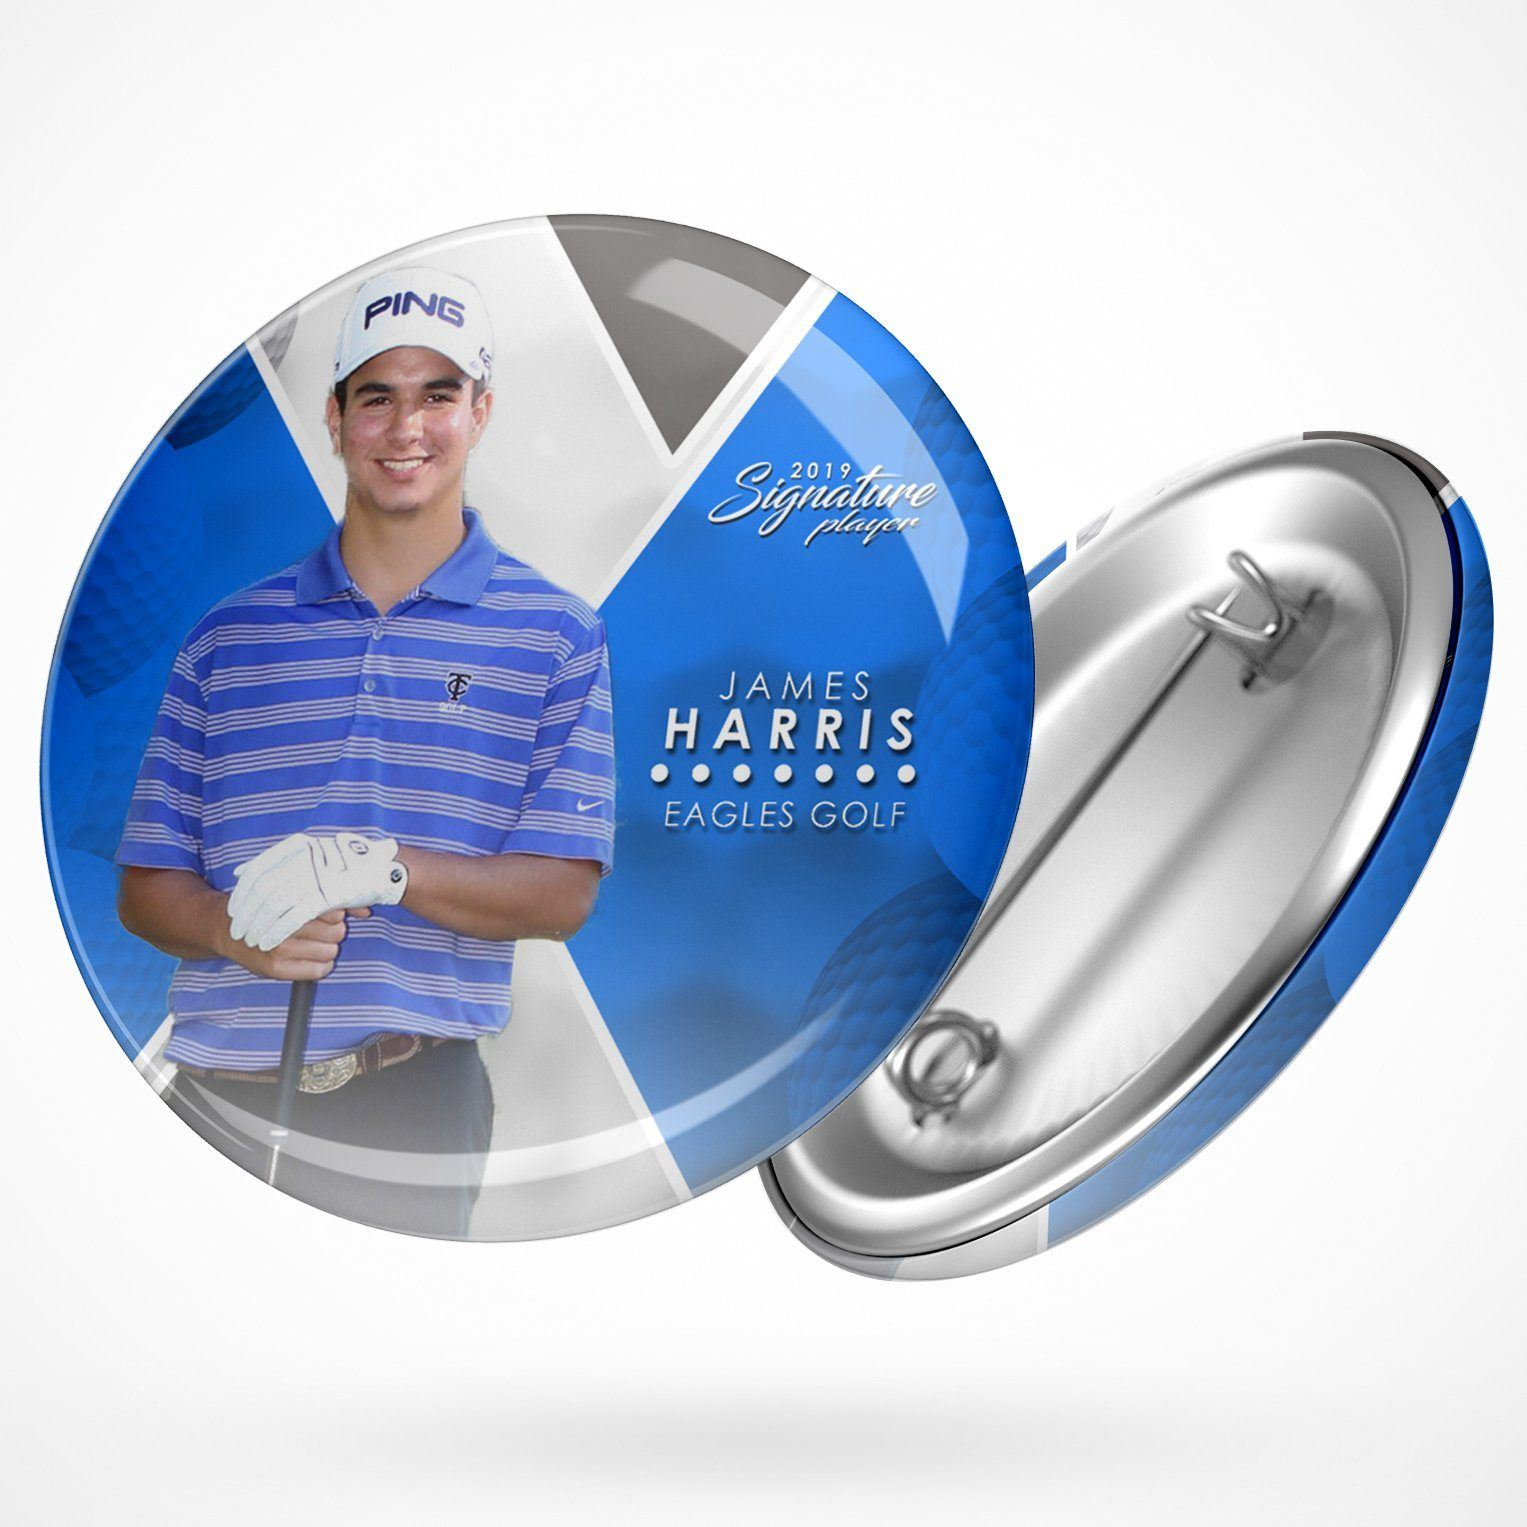 Signature Player - Golf - V2 - Extraction Button Template-Photoshop Template - Photo Solutions